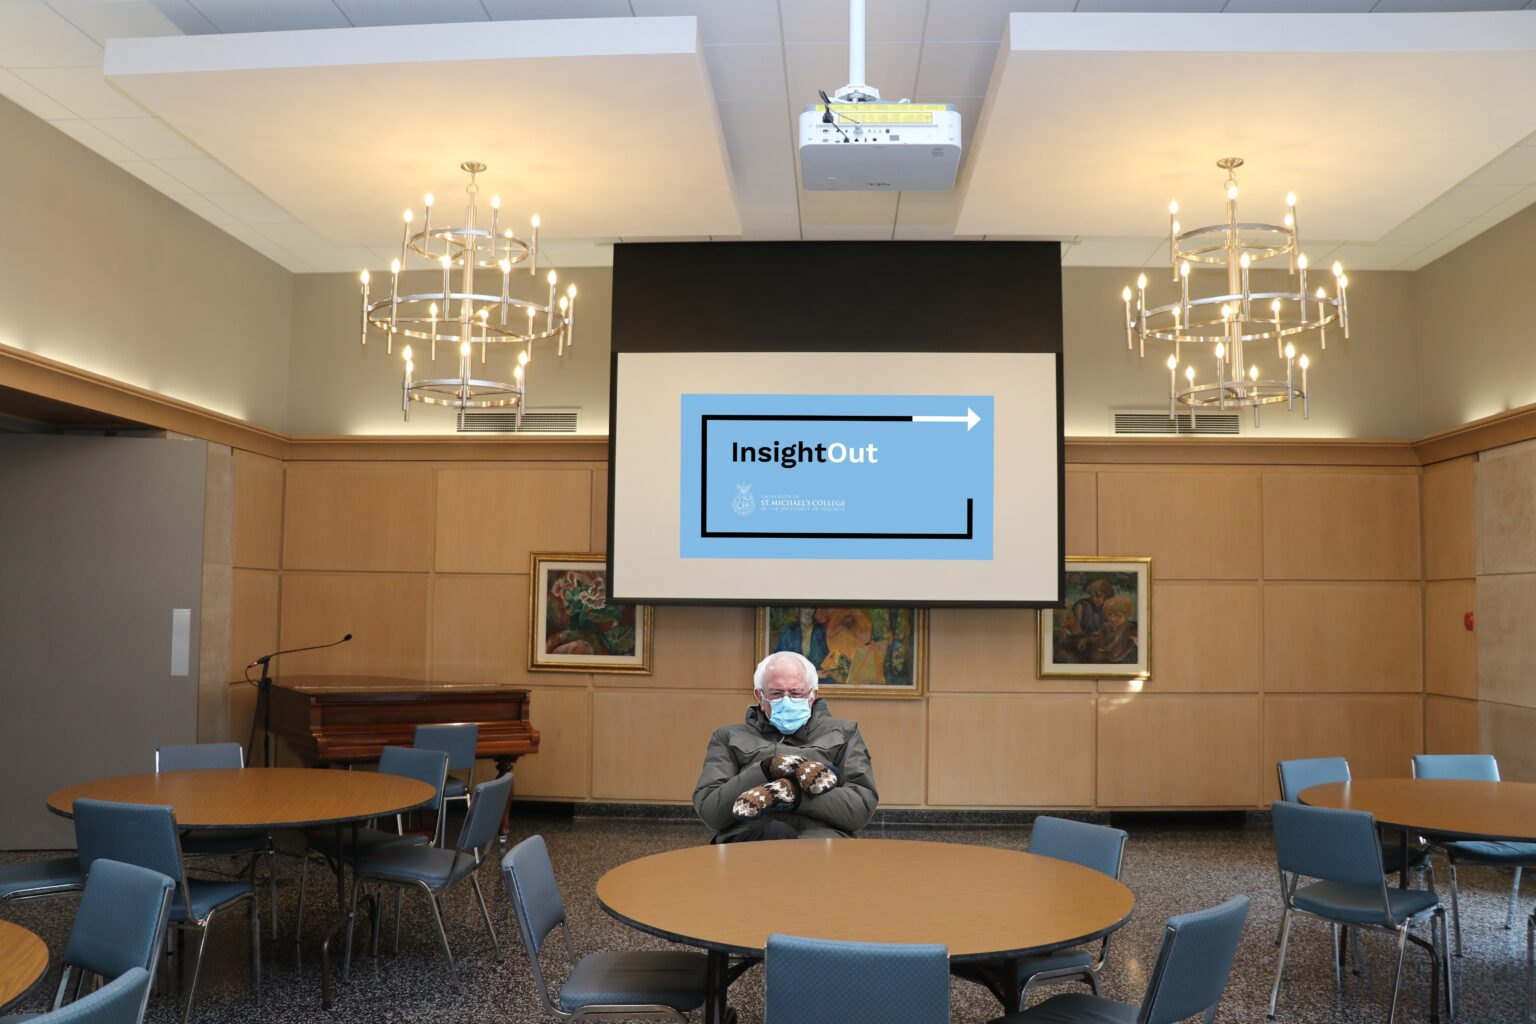 Photoshopped image of Bernie Sanders from the 2021 Presidential Inauguration sitting in Charbonnel Lounge, with the InsightOut logo appearing on a projector screen behind him